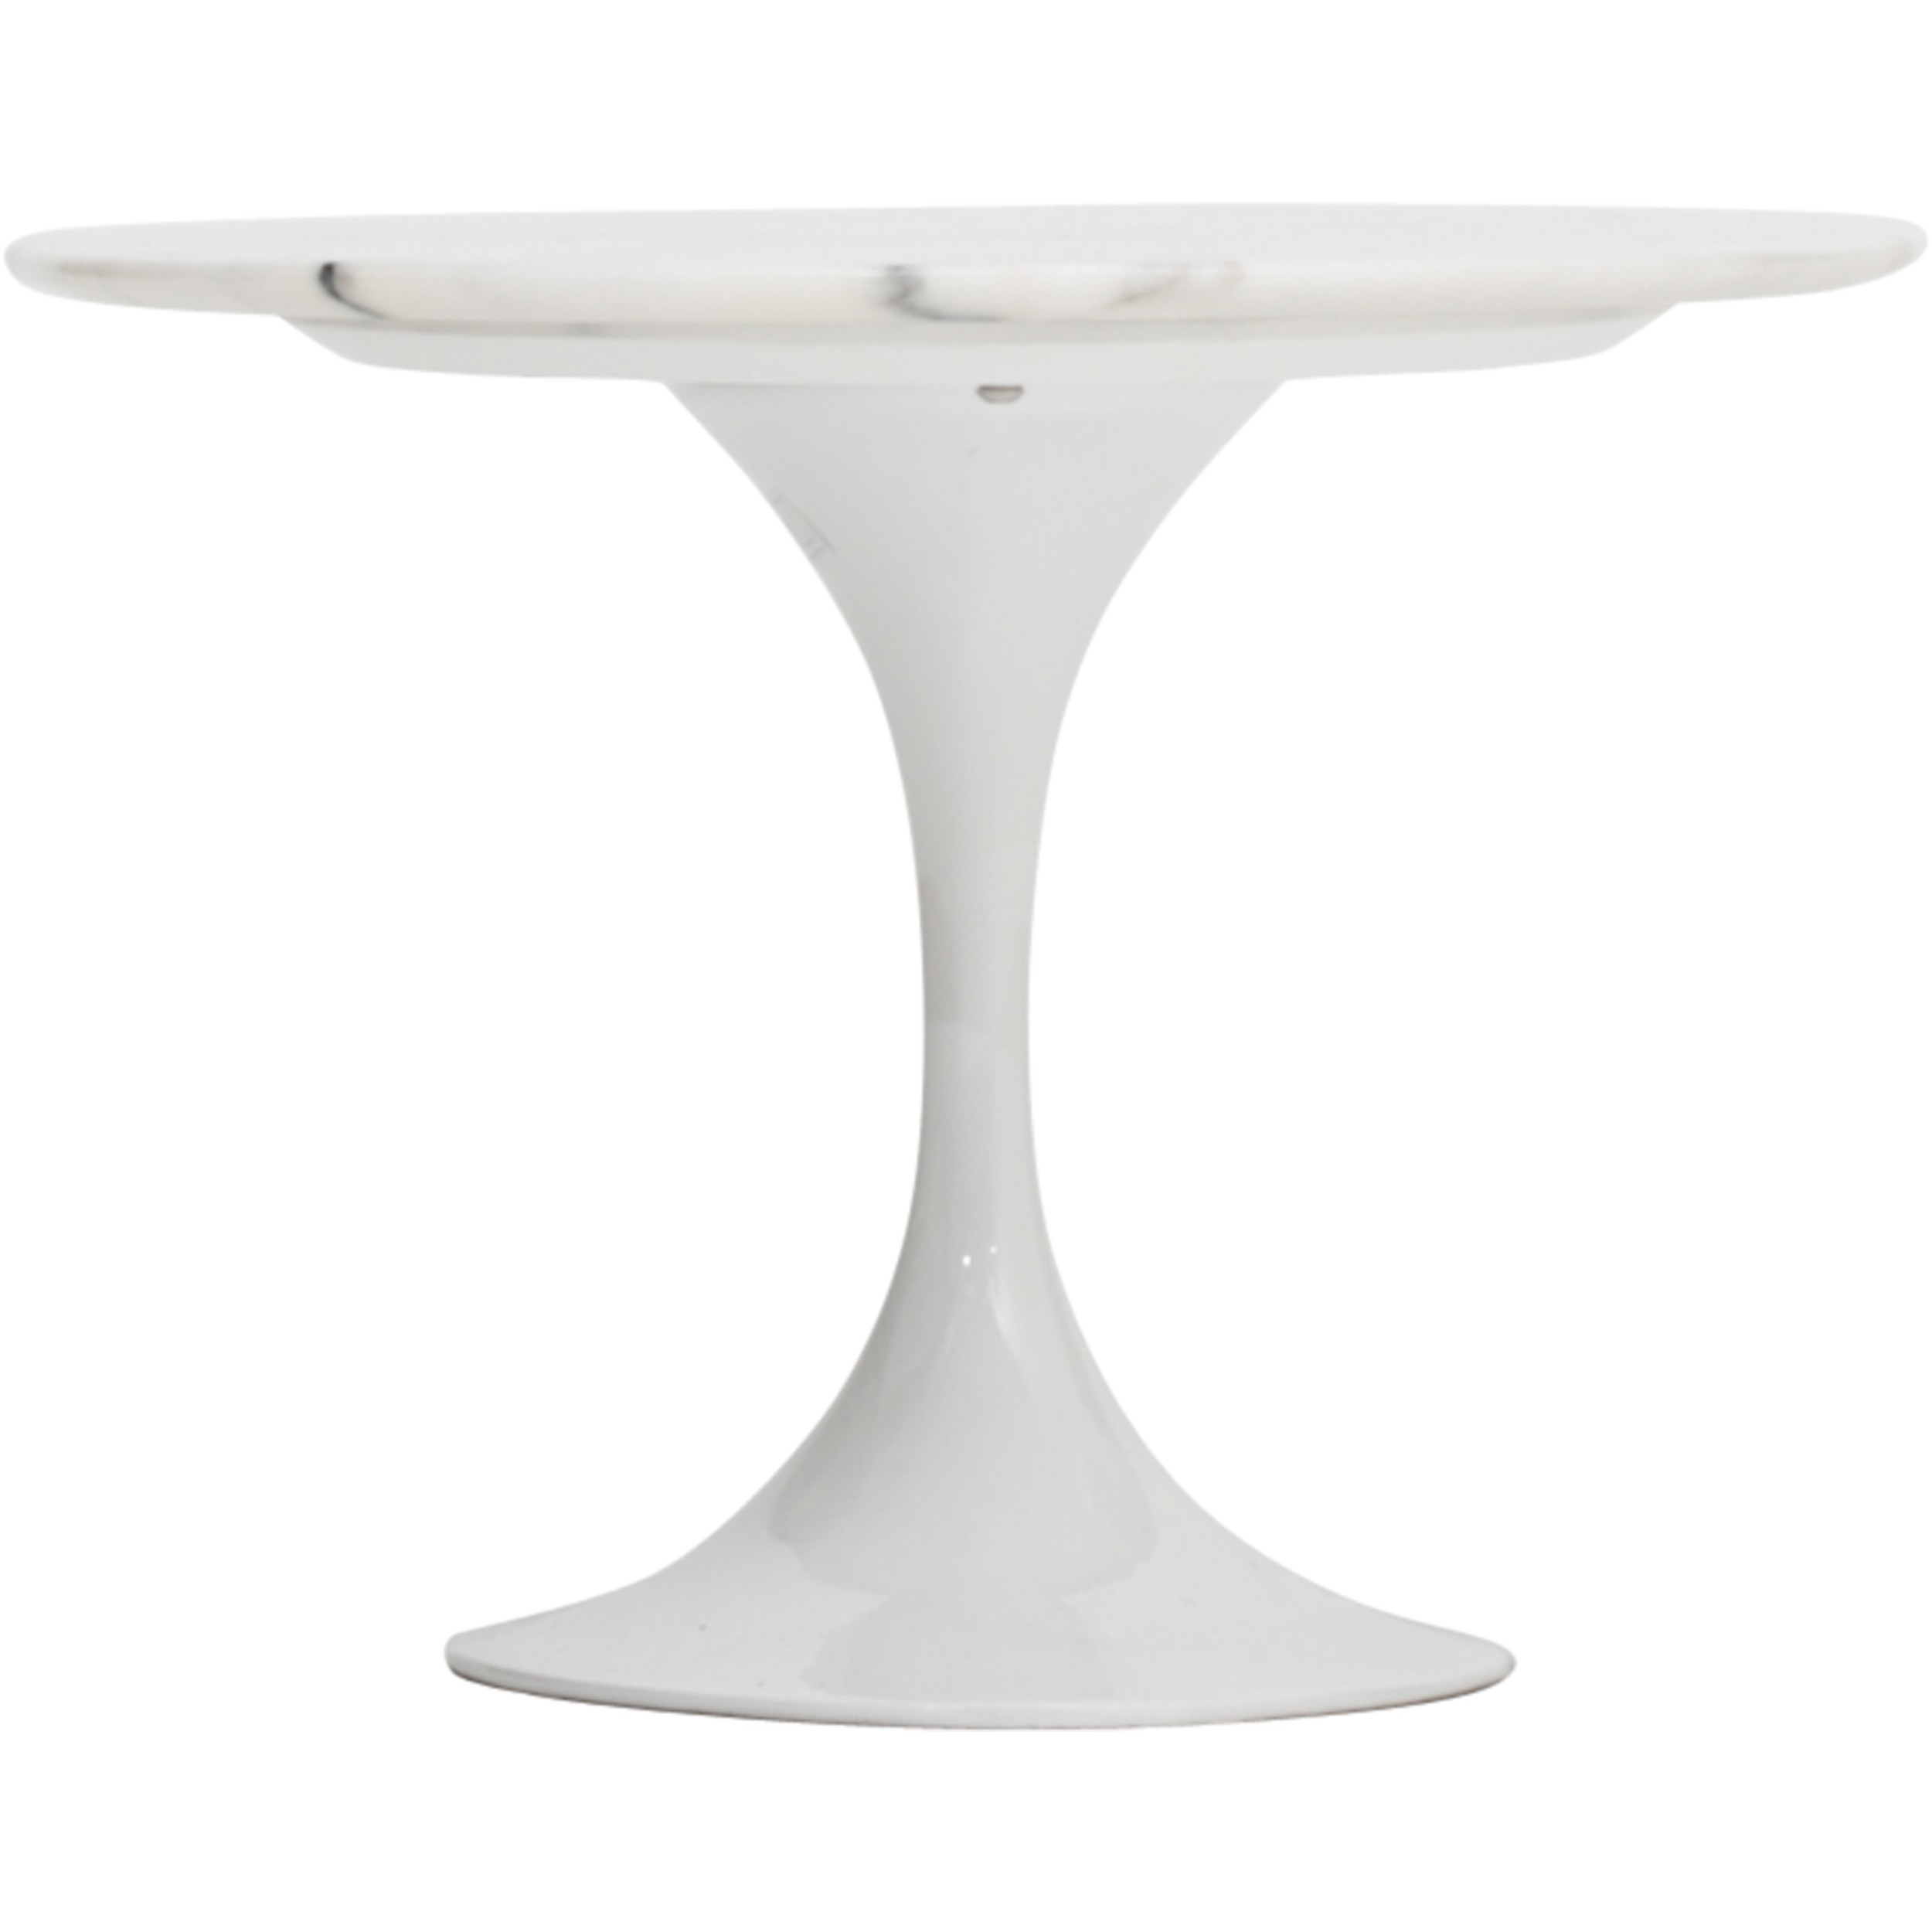 ova coffee table white marble tables accent furniture small bedside lamp shades with drawers homemade end tablet eagle patterned carpet threshold transition strip top tall